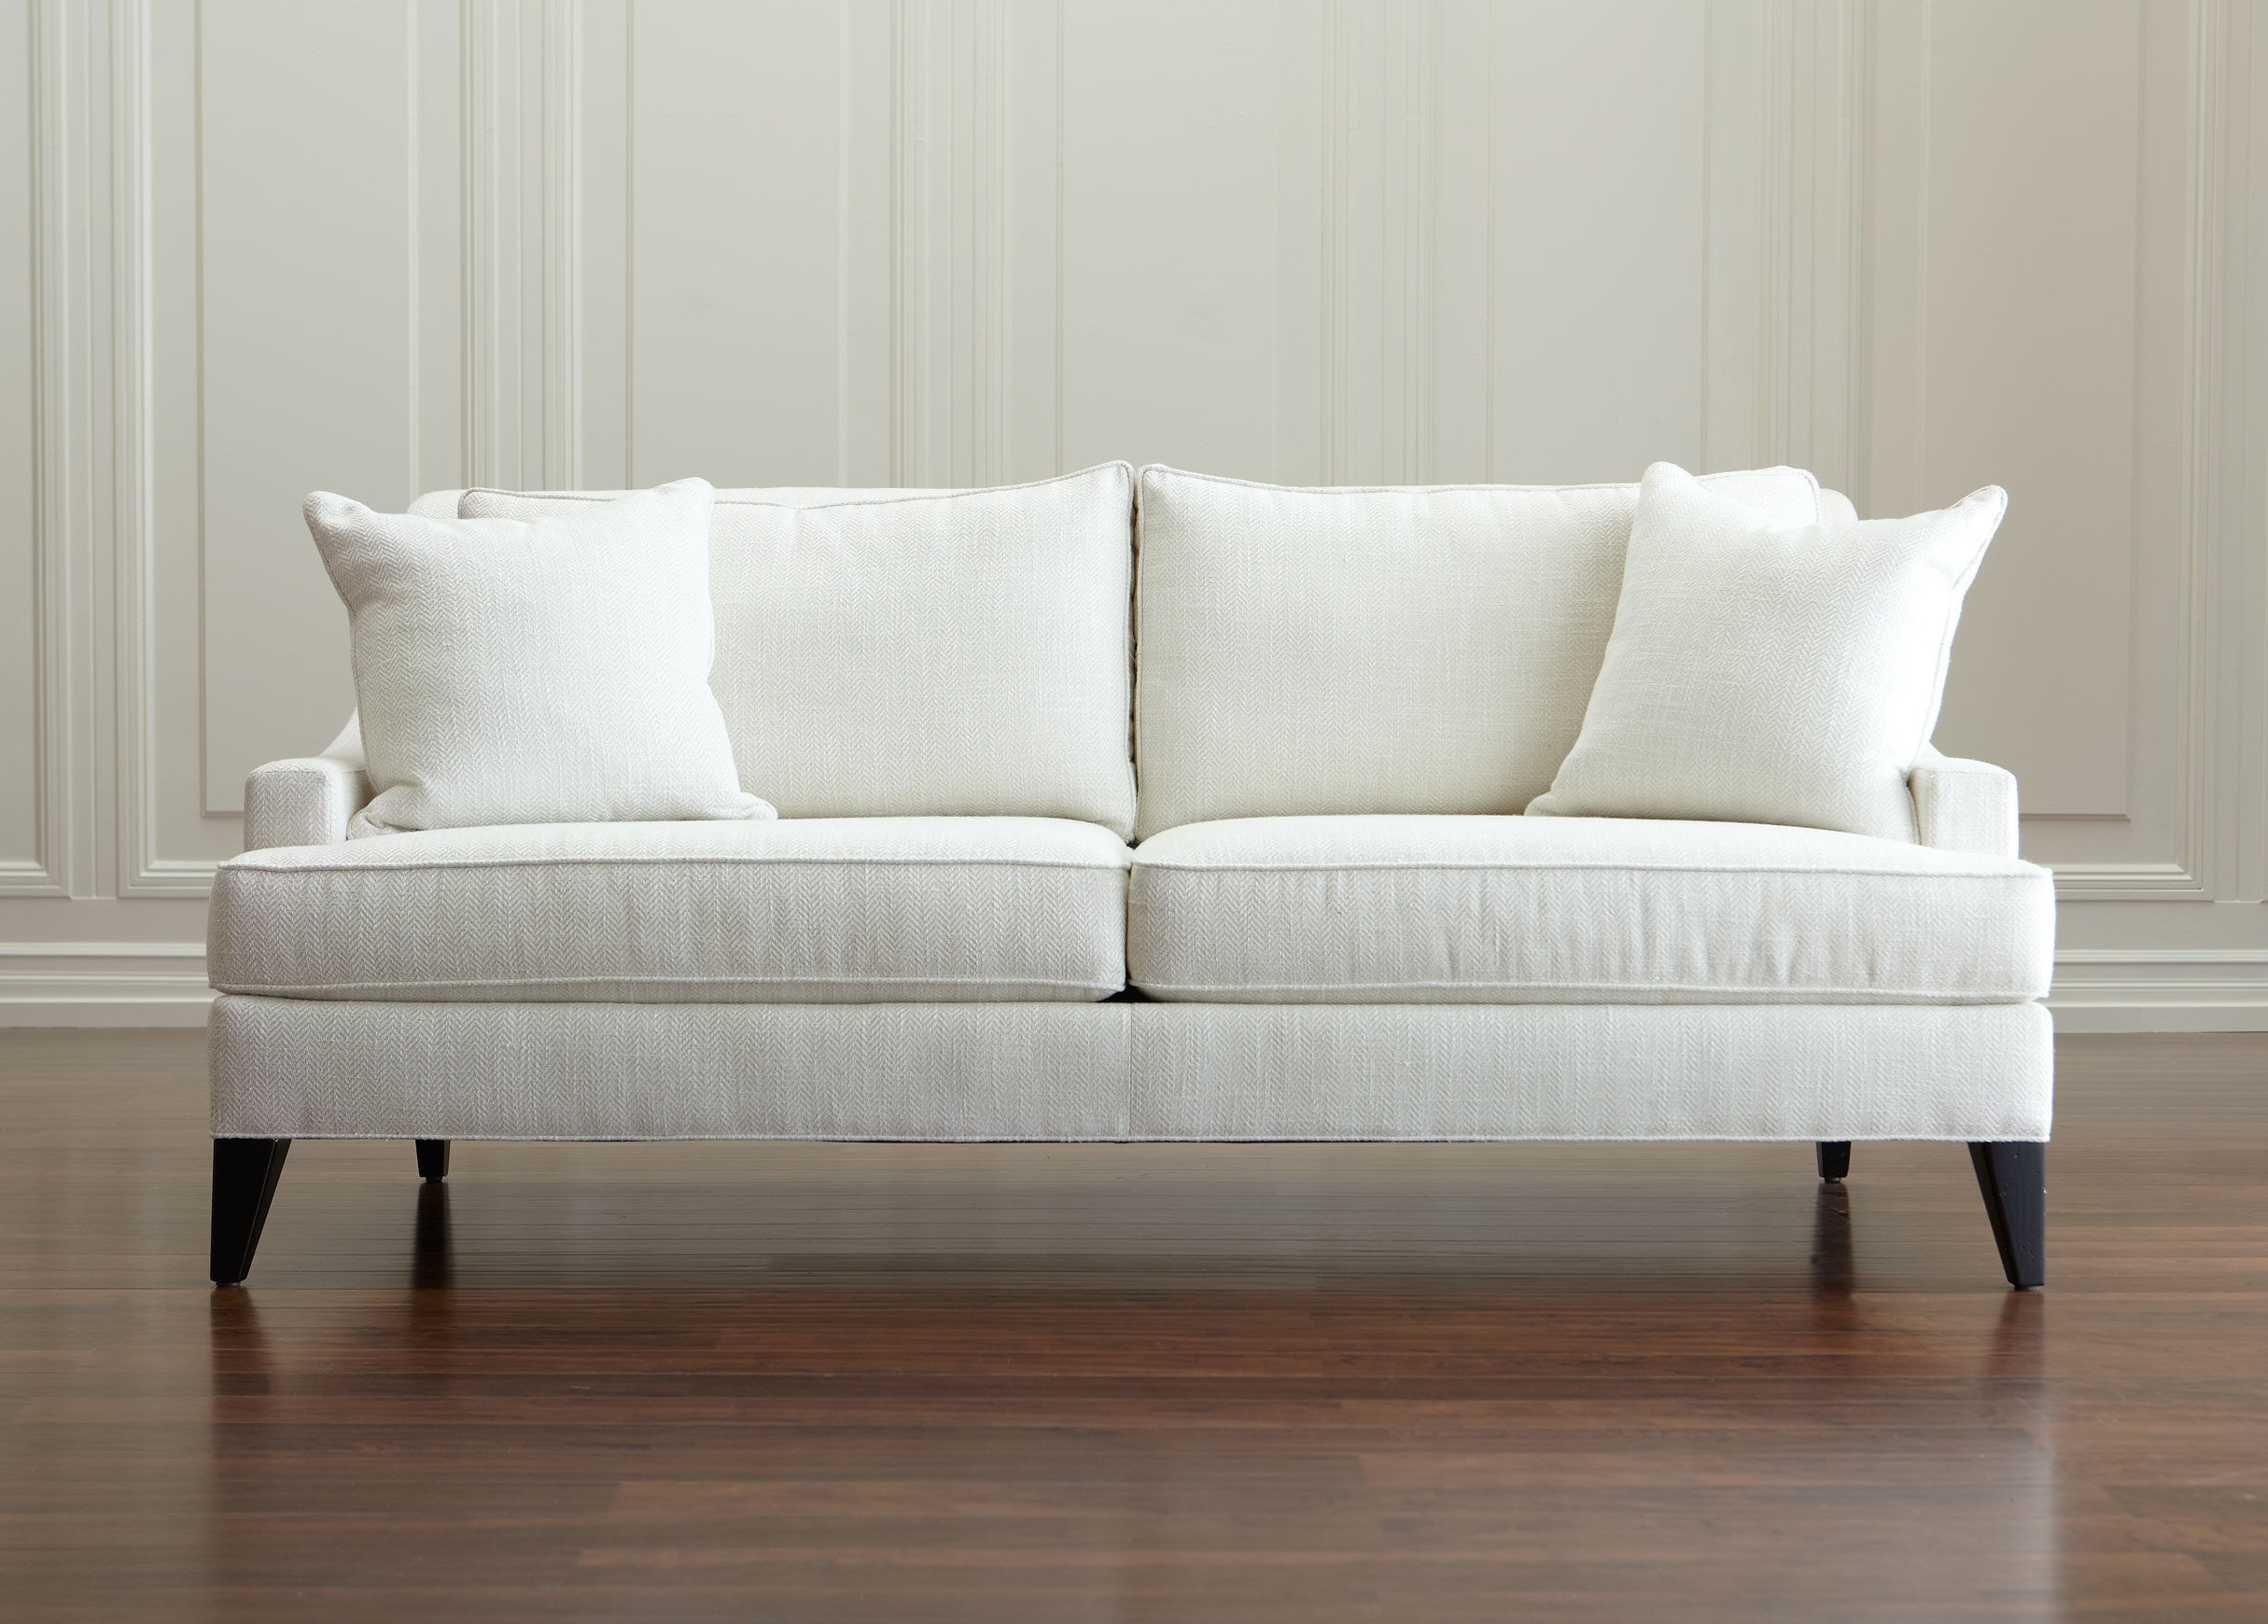 Down Filled Sofas For Recent Furniture : Ethan Allen Down Filled Sofa Luxury Best Ethan Allen (View 2 of 15)